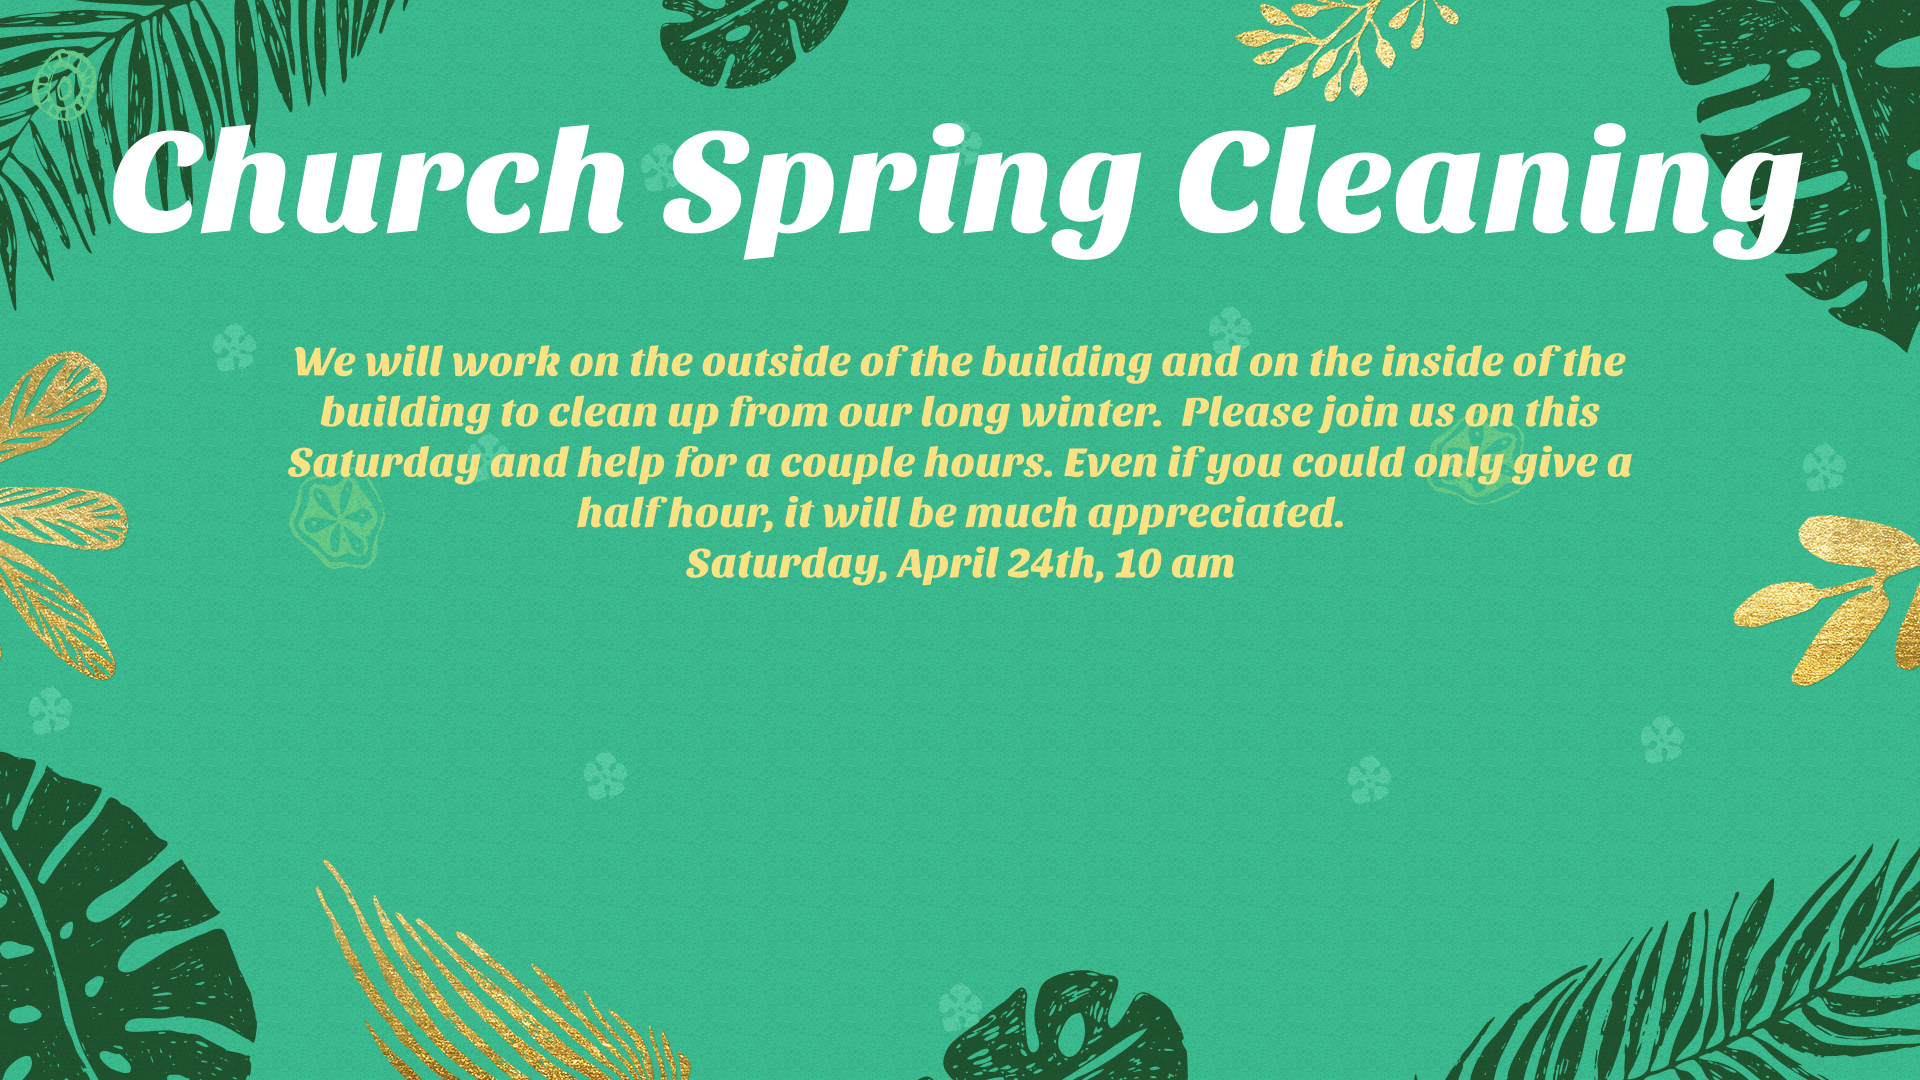 Church Spring Cleaning